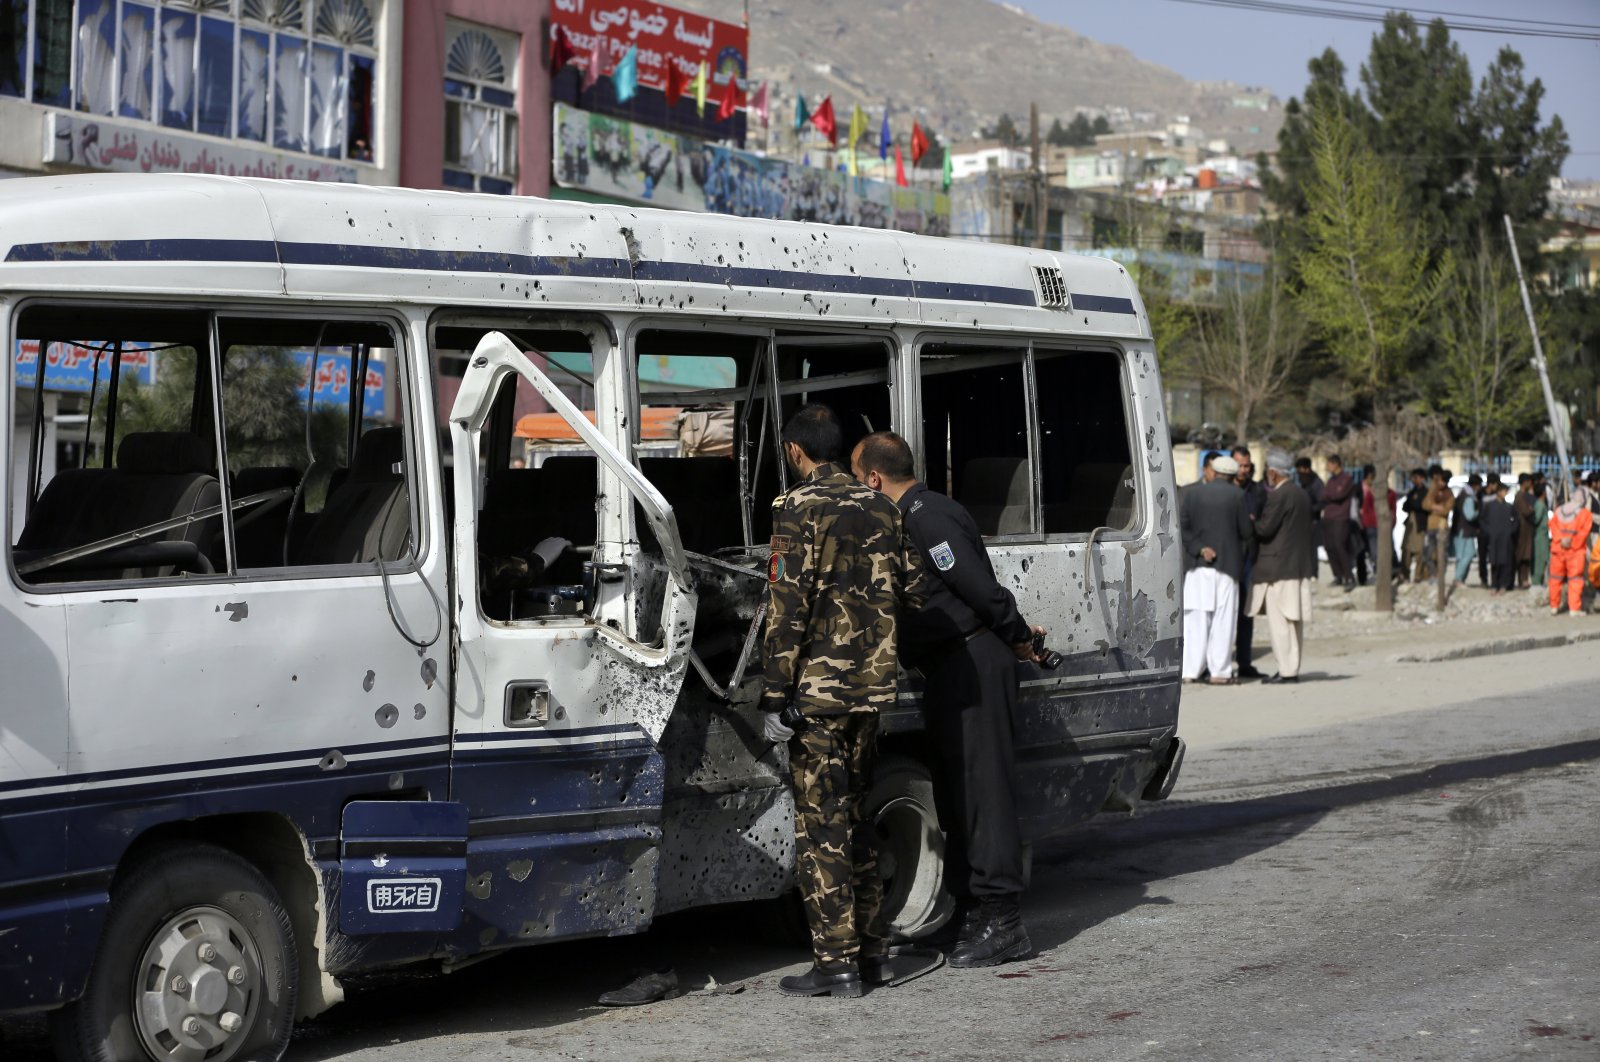 Security personnel inspects a damaged minibus after a bomb explosion in Kabul, Afghanistan, March 18, 2021. (AP Photo)